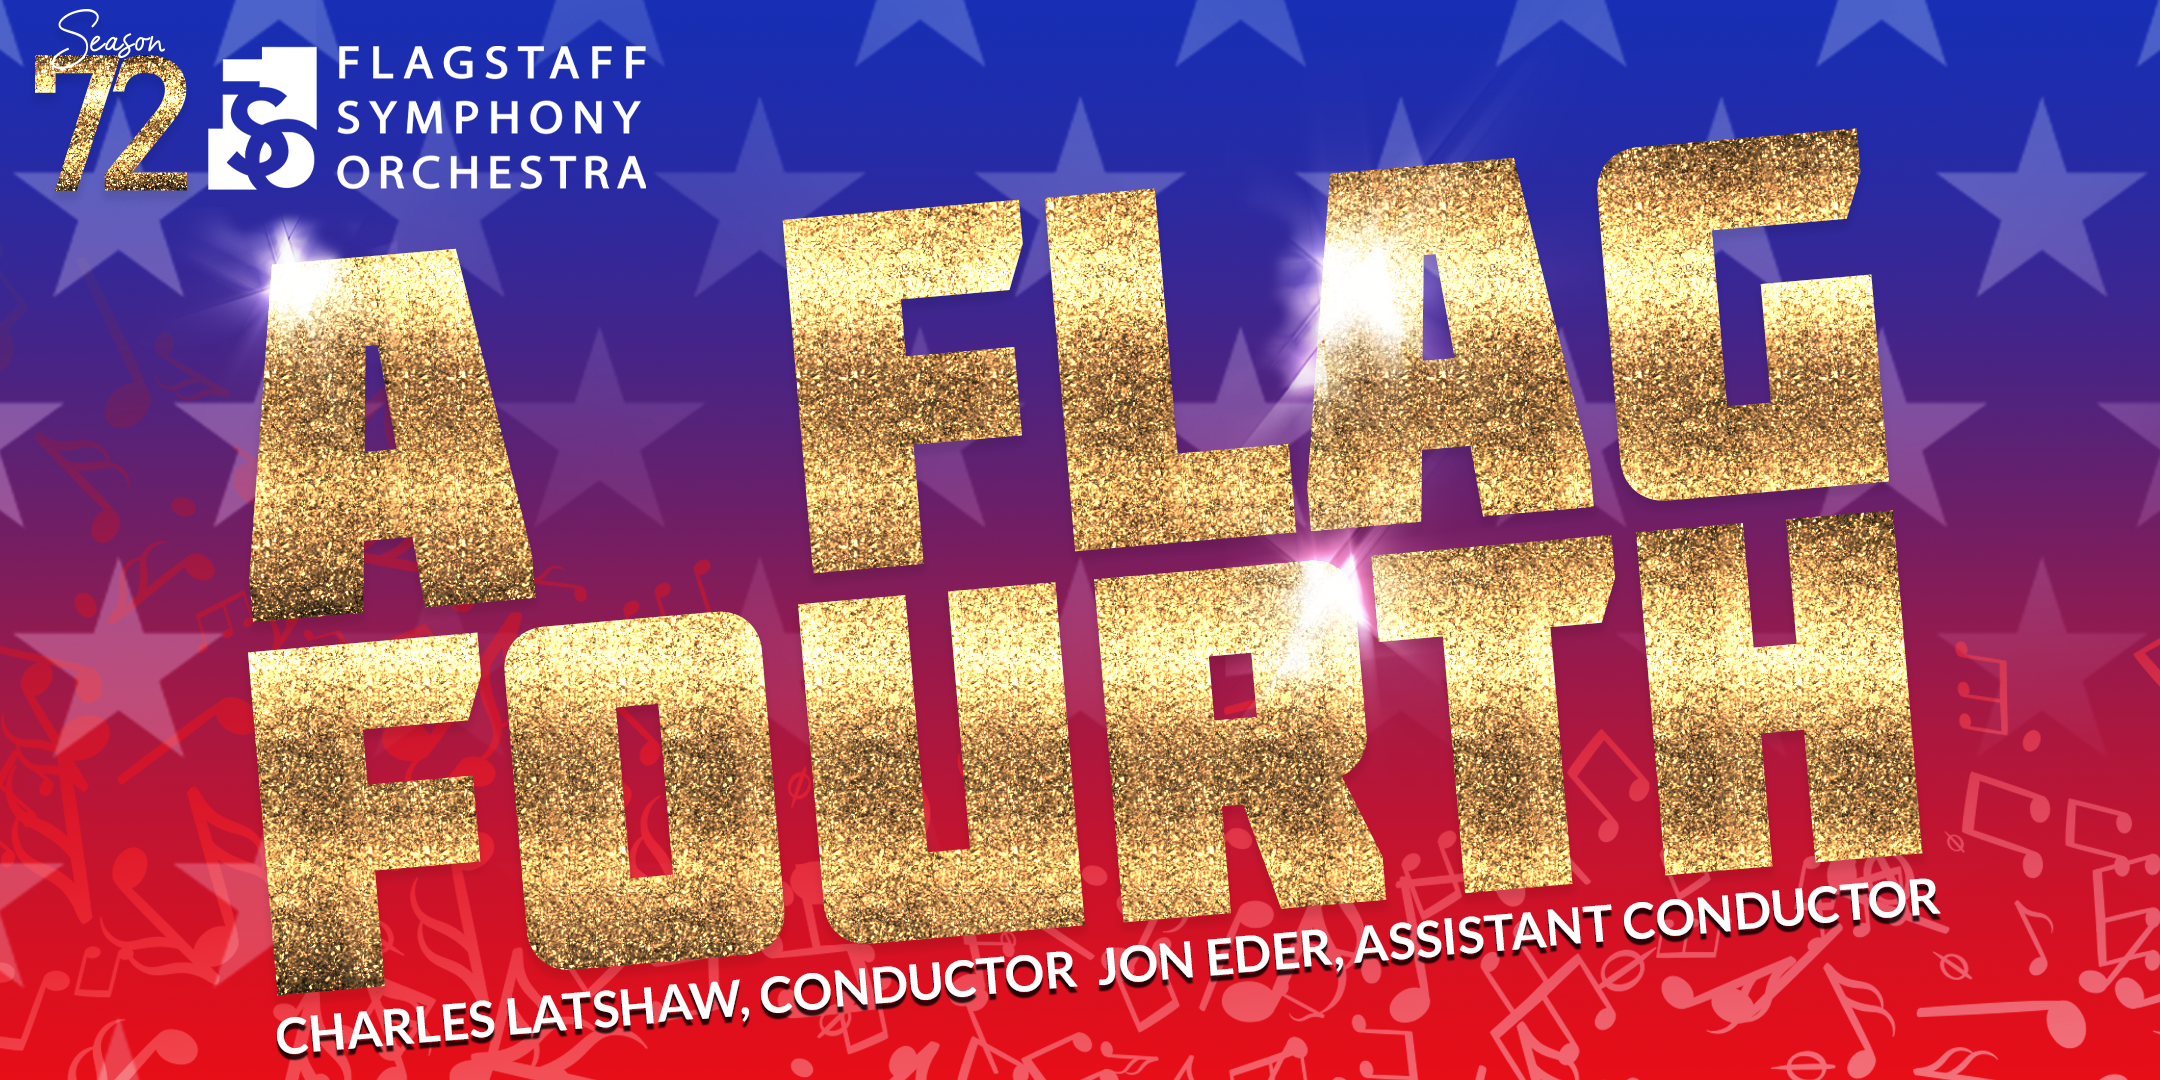 THE FLAGSTAFF SYMPHONY ORCHESTRA RETURNS TO LIVE PERFORMANCES ON JULY 4TH